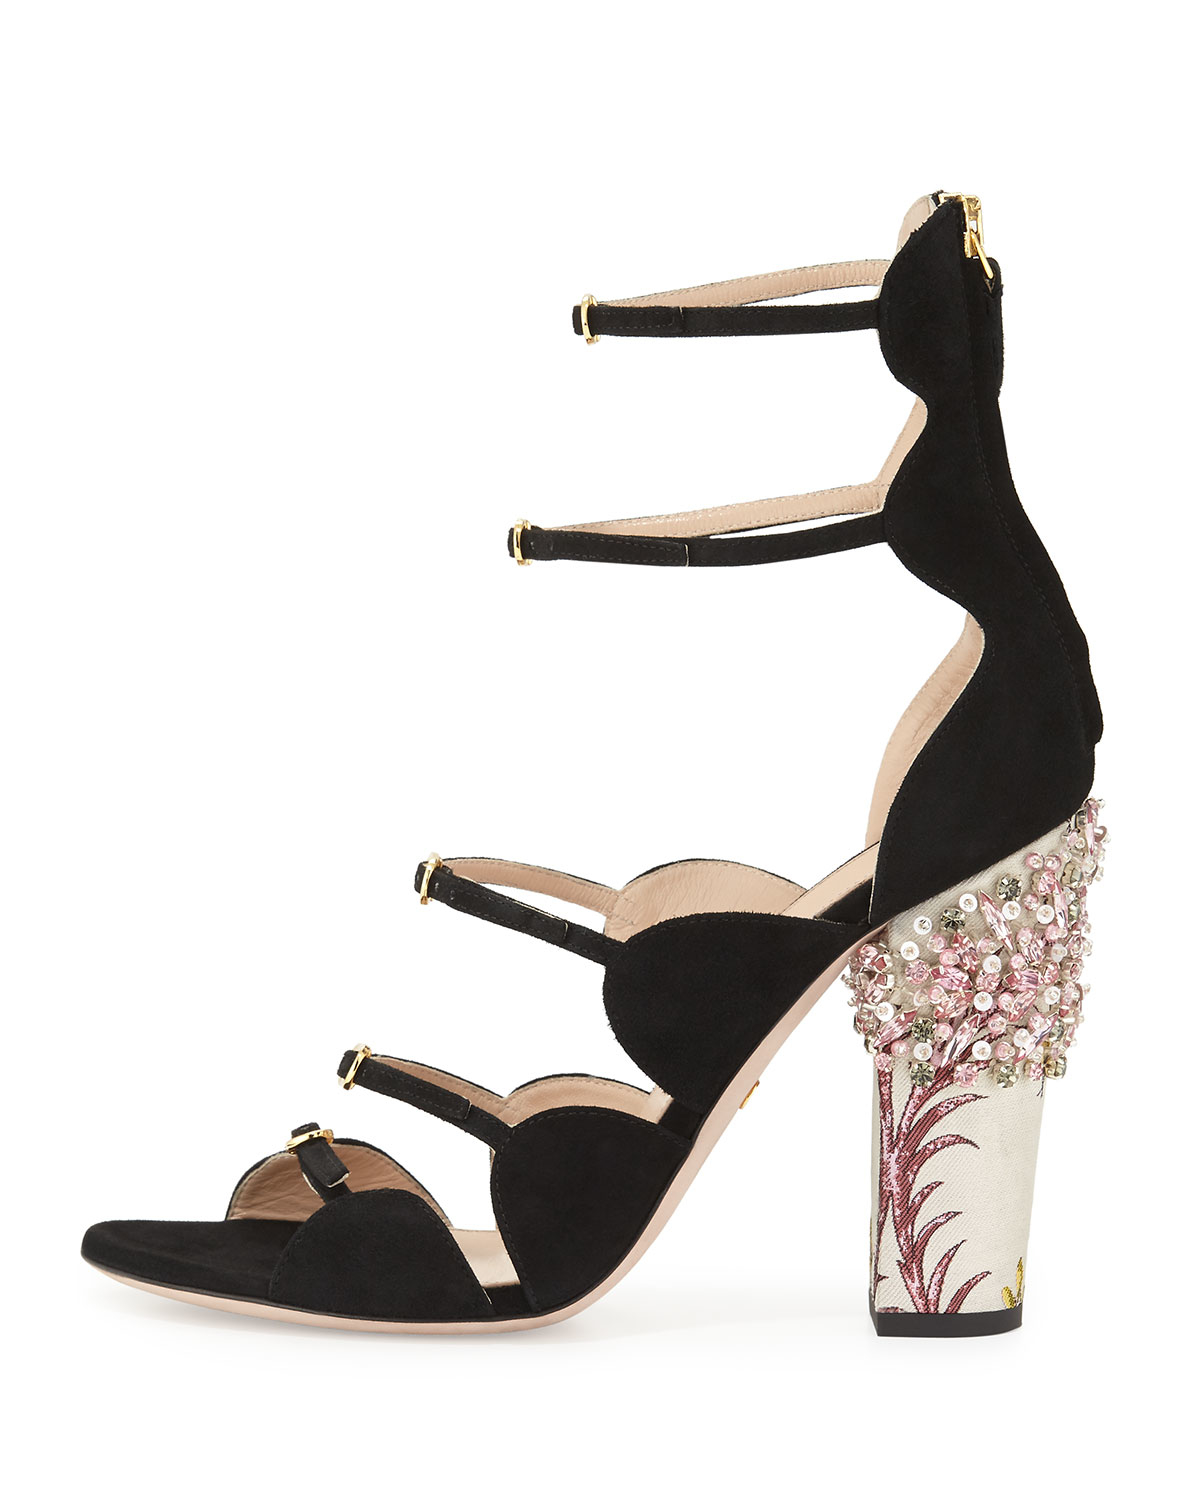 cheap best place Giambattista Valli Embellished Ankle Strap Sandals clearance big sale D9Uysbke1